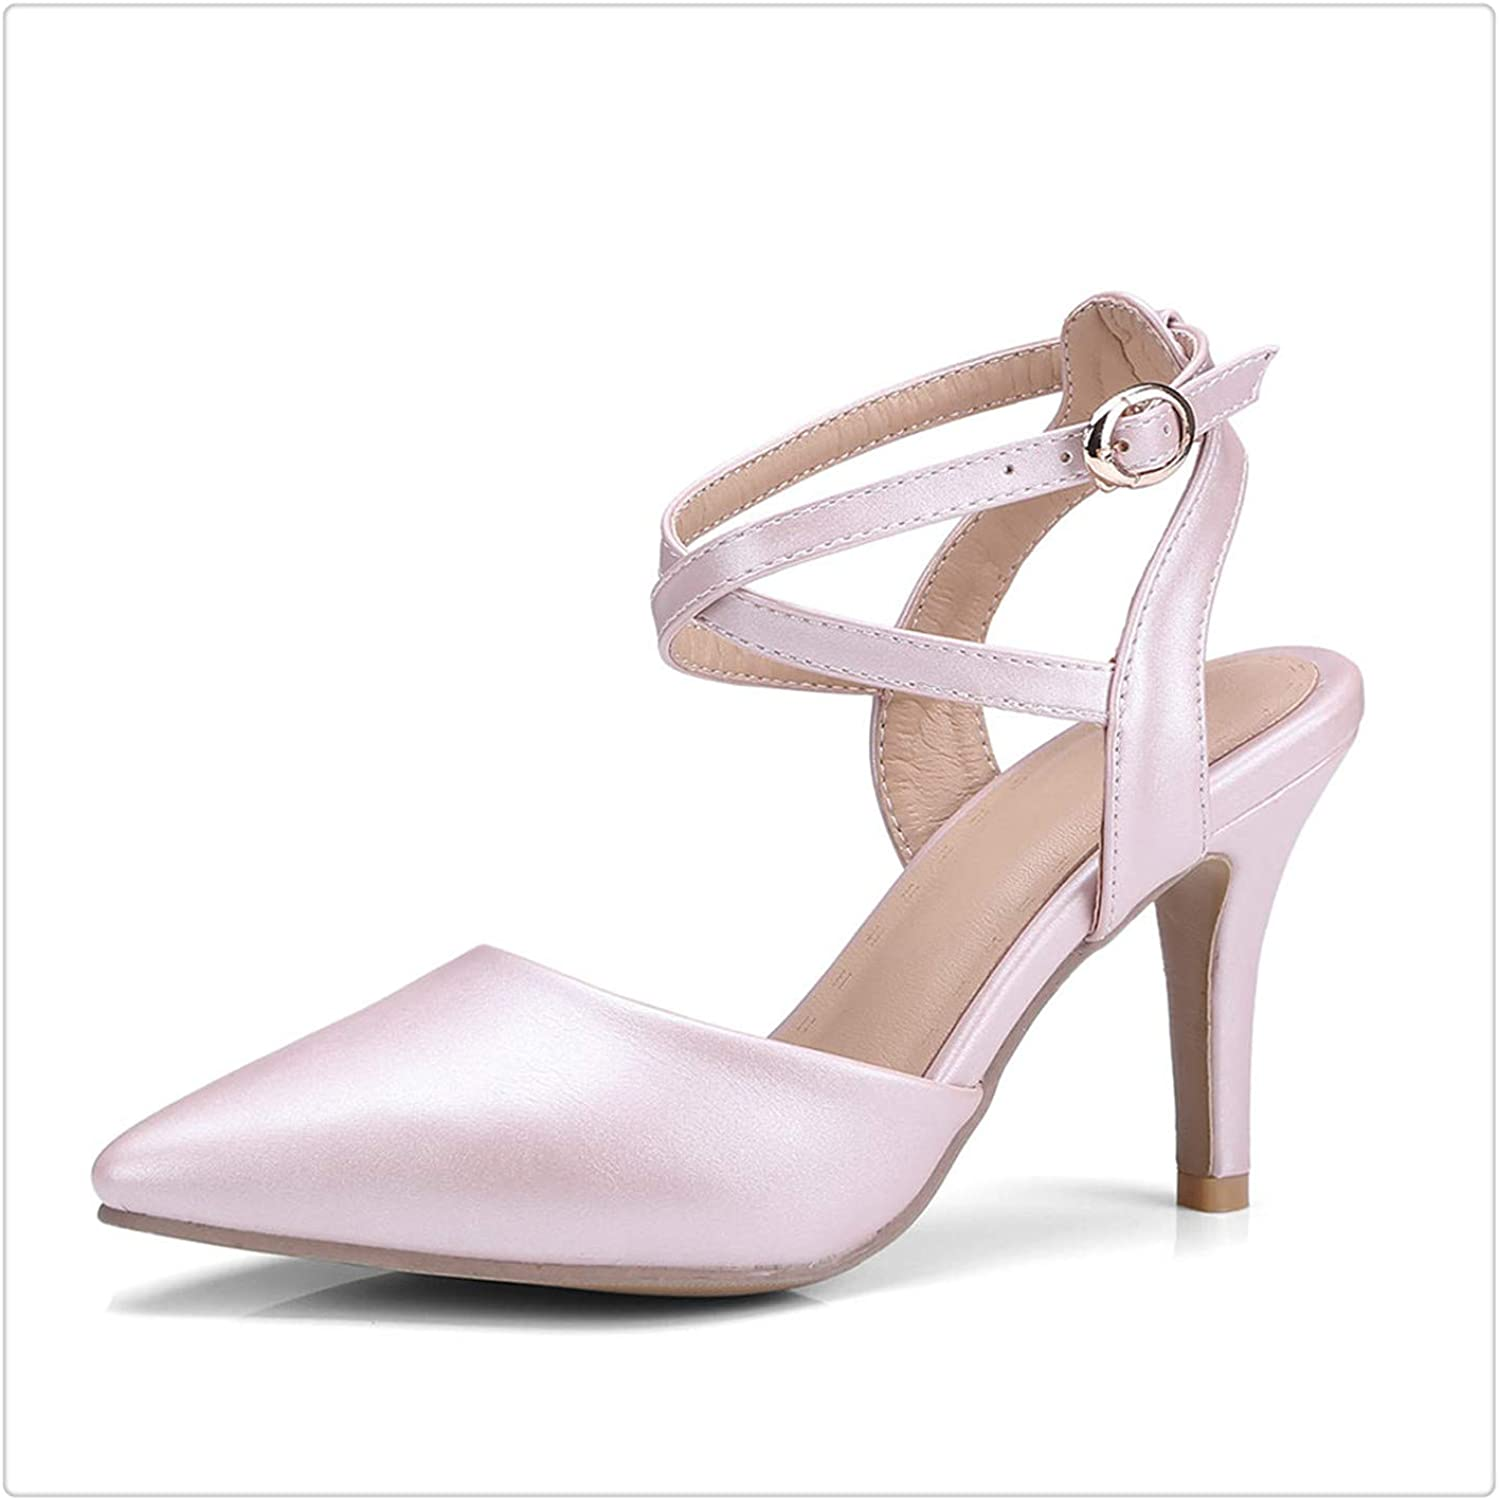 HROST& Women Buckle Sandals High Heels Cross Tied Ankle Strap Pointed Toe Party shoes